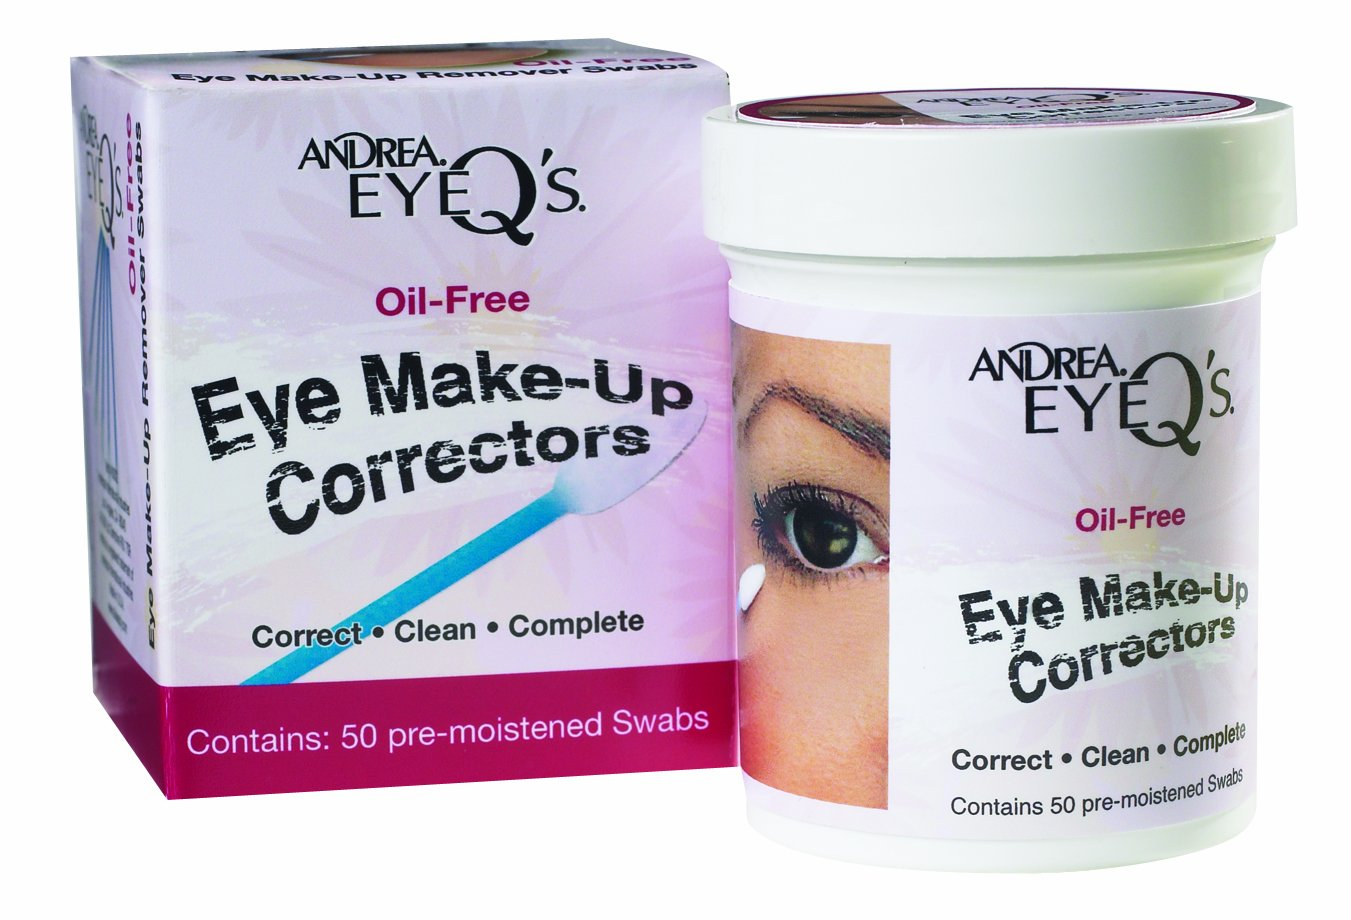 Andrea Eyeq's Oil-free Eye Make-up Correctors Pre-moistened Swabs, 50 Count And-7281